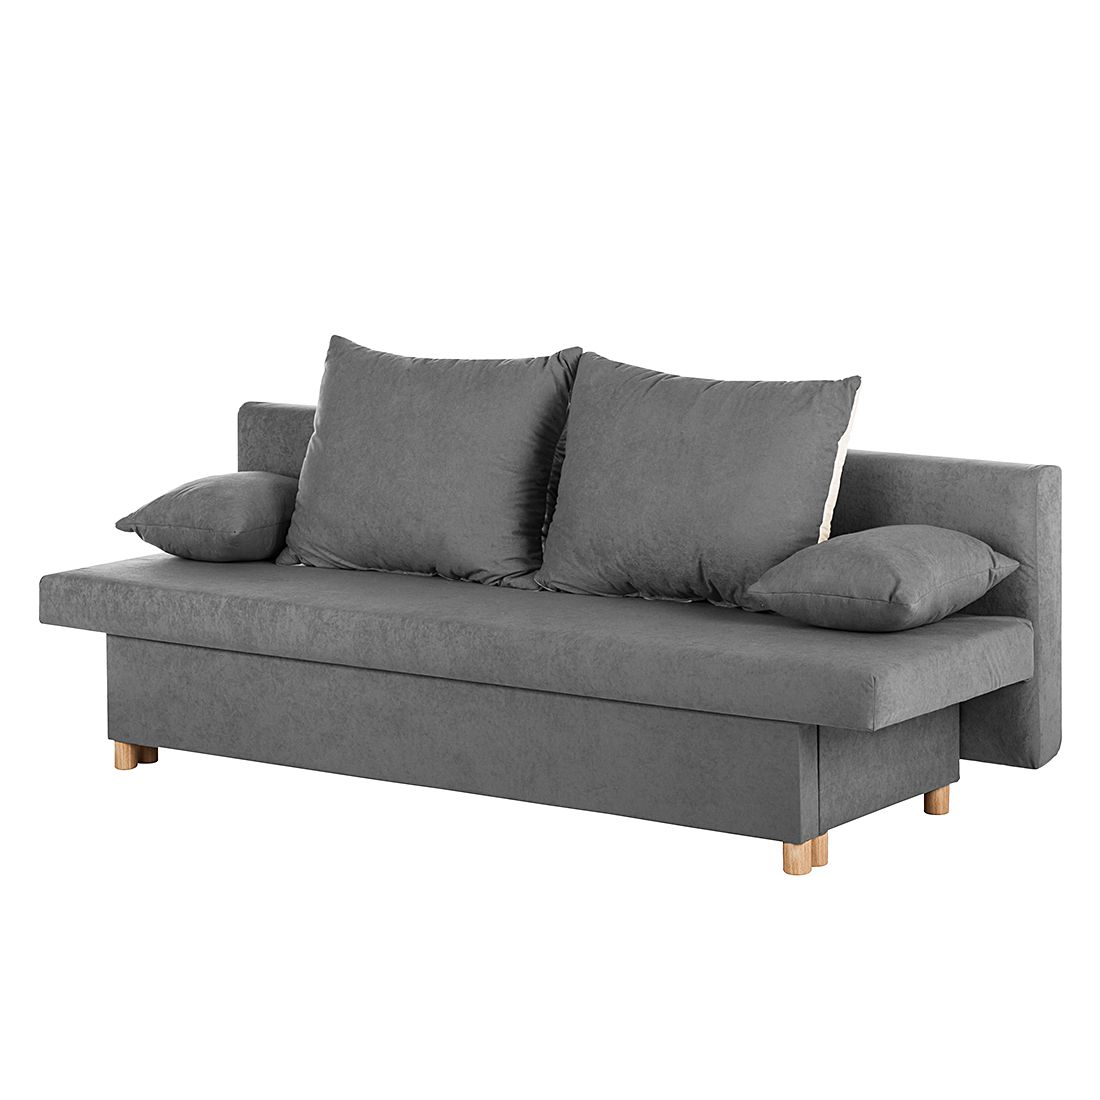 Largeur guide d 39 achat for Schlafsofa 3m